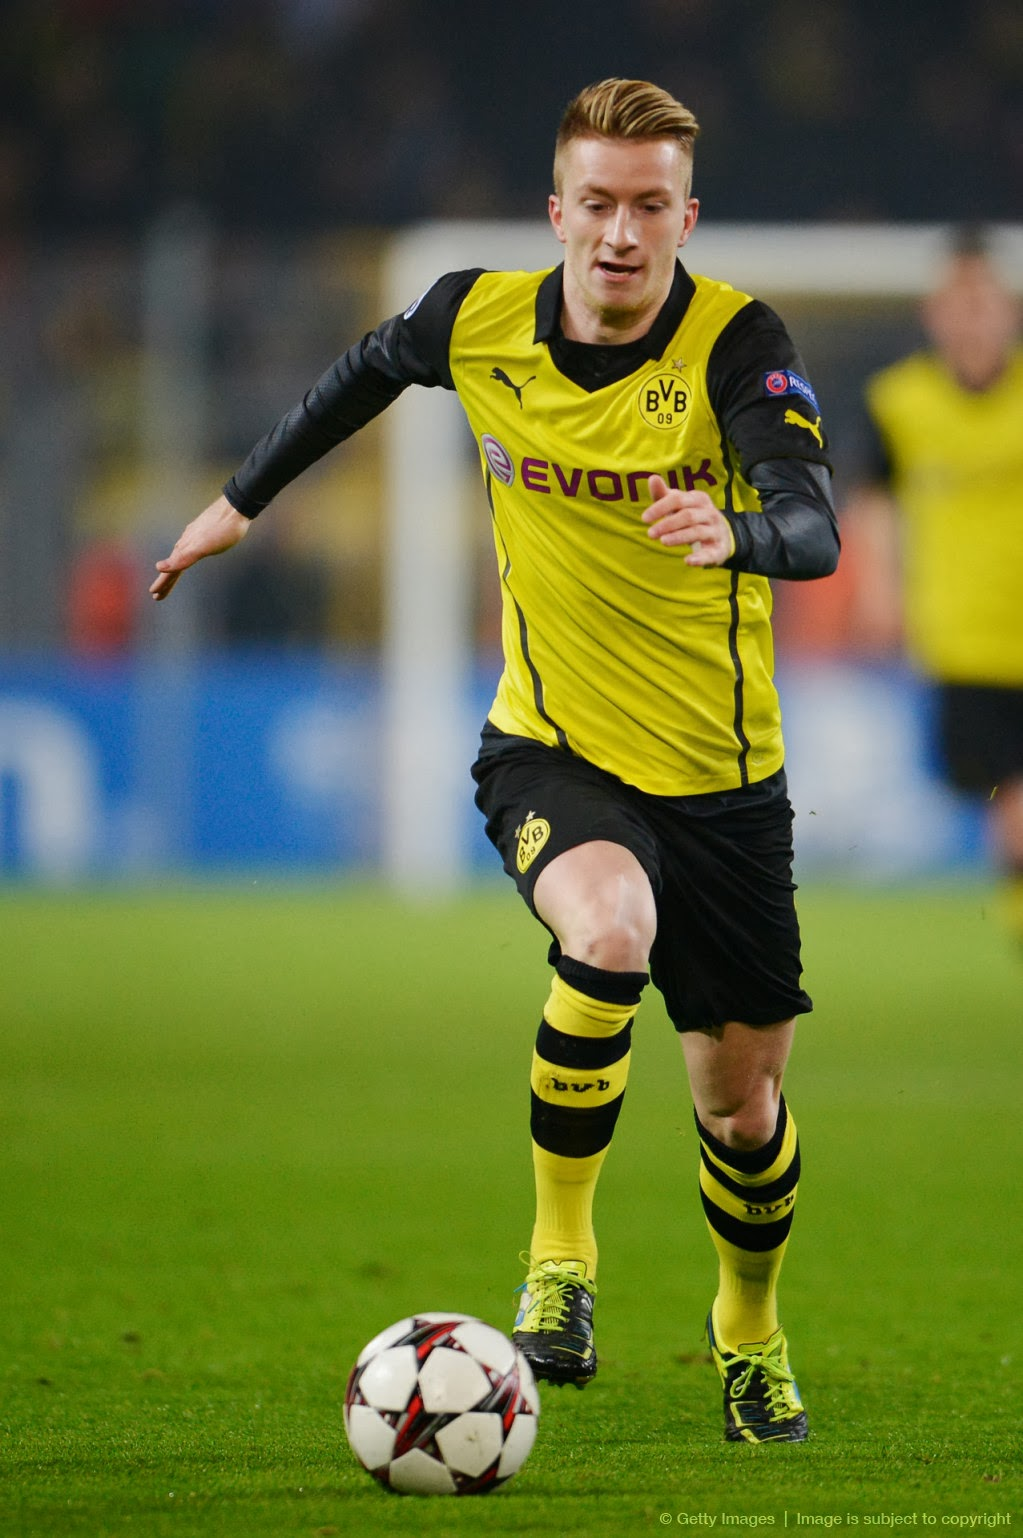 All About Marco Reus Arco Reus Vs Napoli